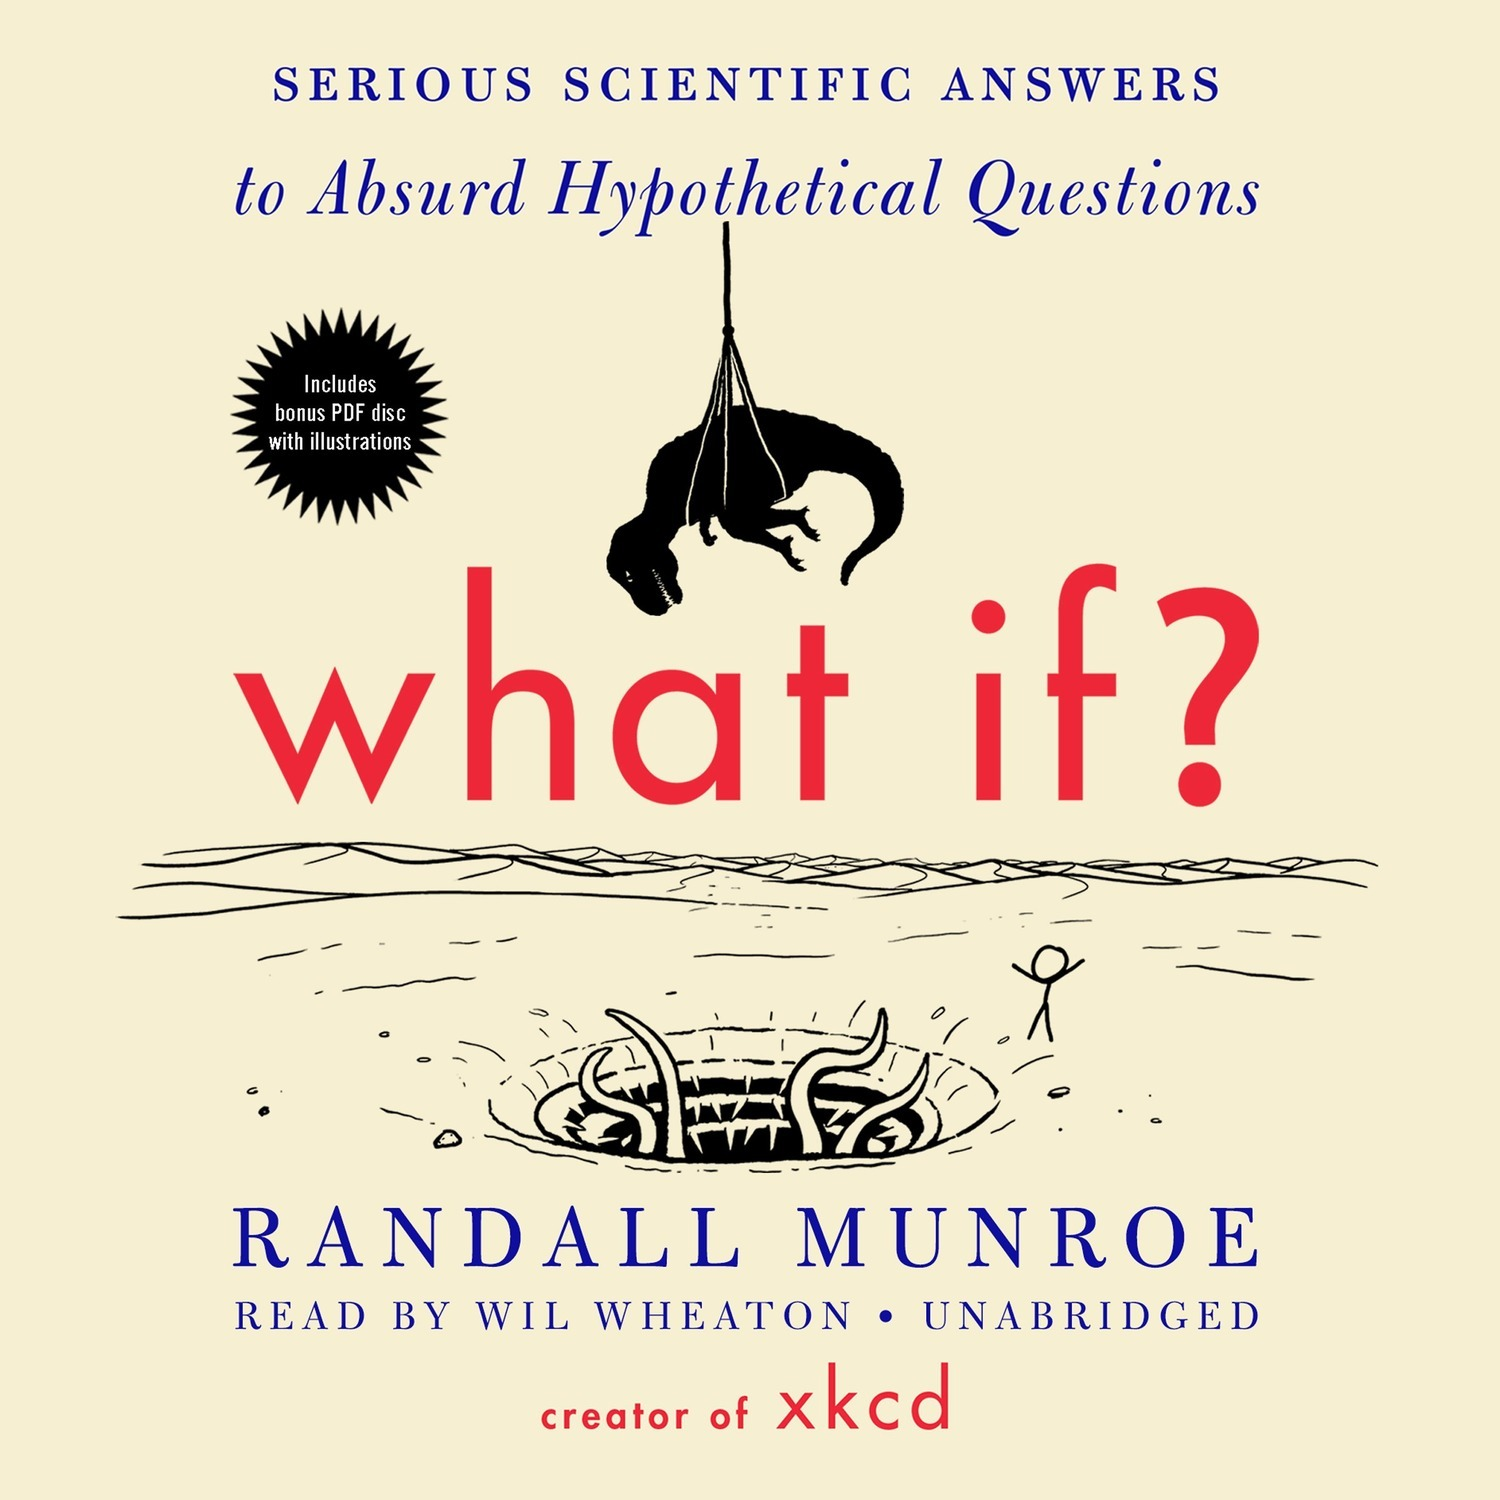 What If Scientific Answers To Absurd Questions